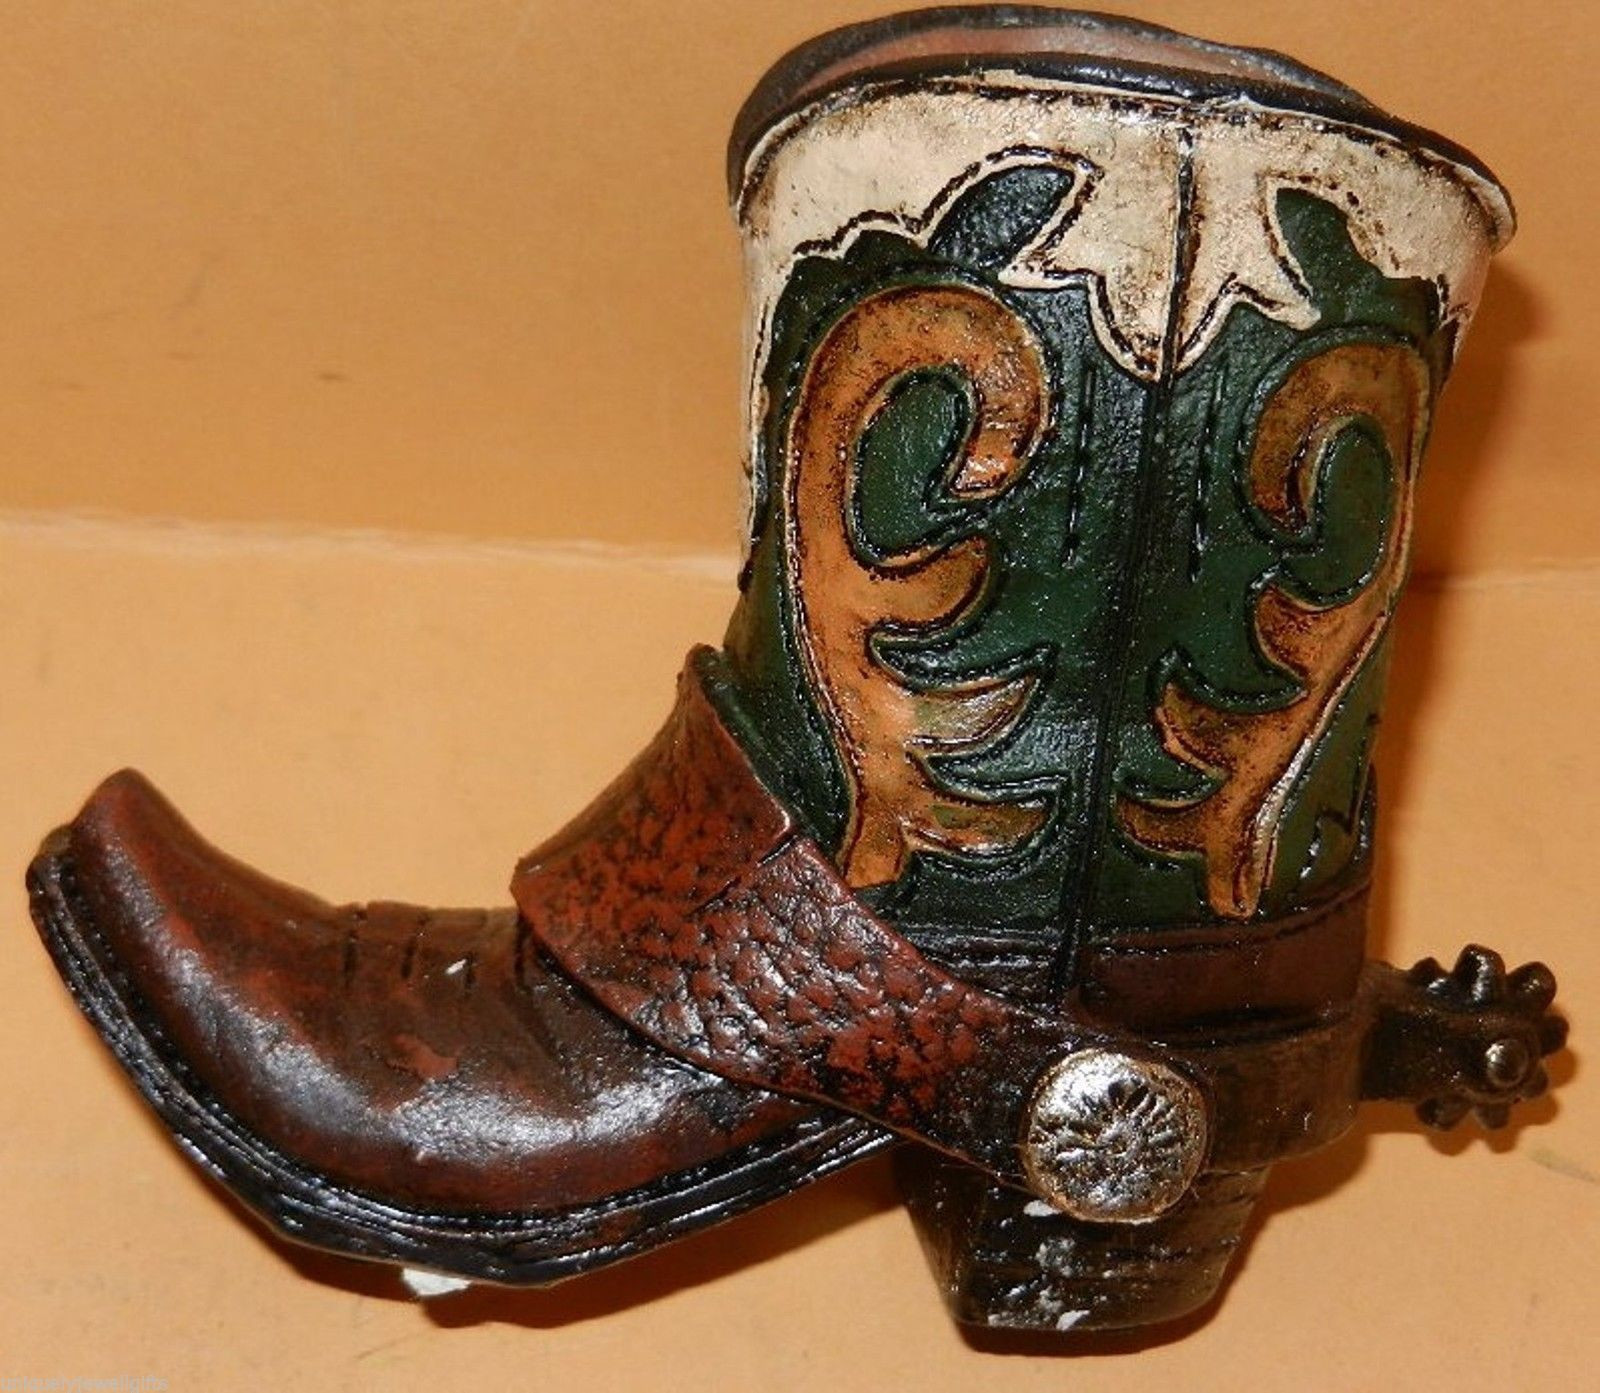 cowboy boot vases wholesale of cowboy boot pen holder www topsimages com inside western resin cowboy boot collectible plant pen pencil holder green jpg 1600x1393 cowboy boot pen holder